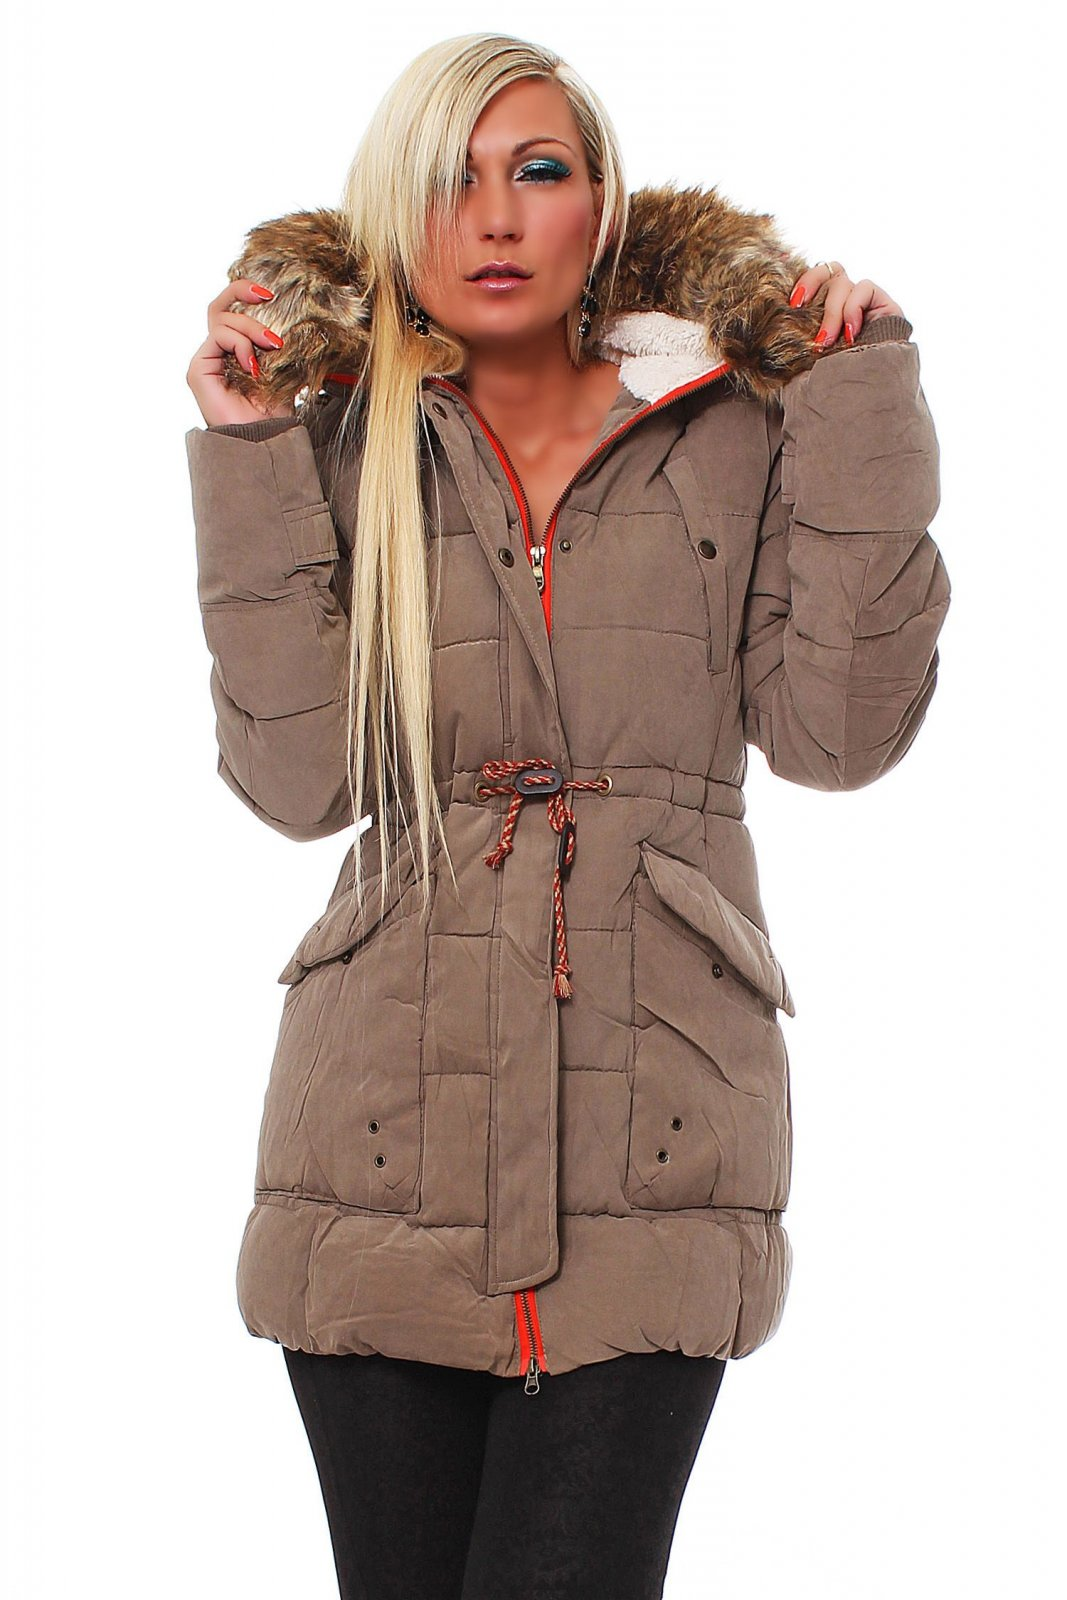 damen winterjacke mit kapuze wintermantel parka lang fell daunen ebay. Black Bedroom Furniture Sets. Home Design Ideas